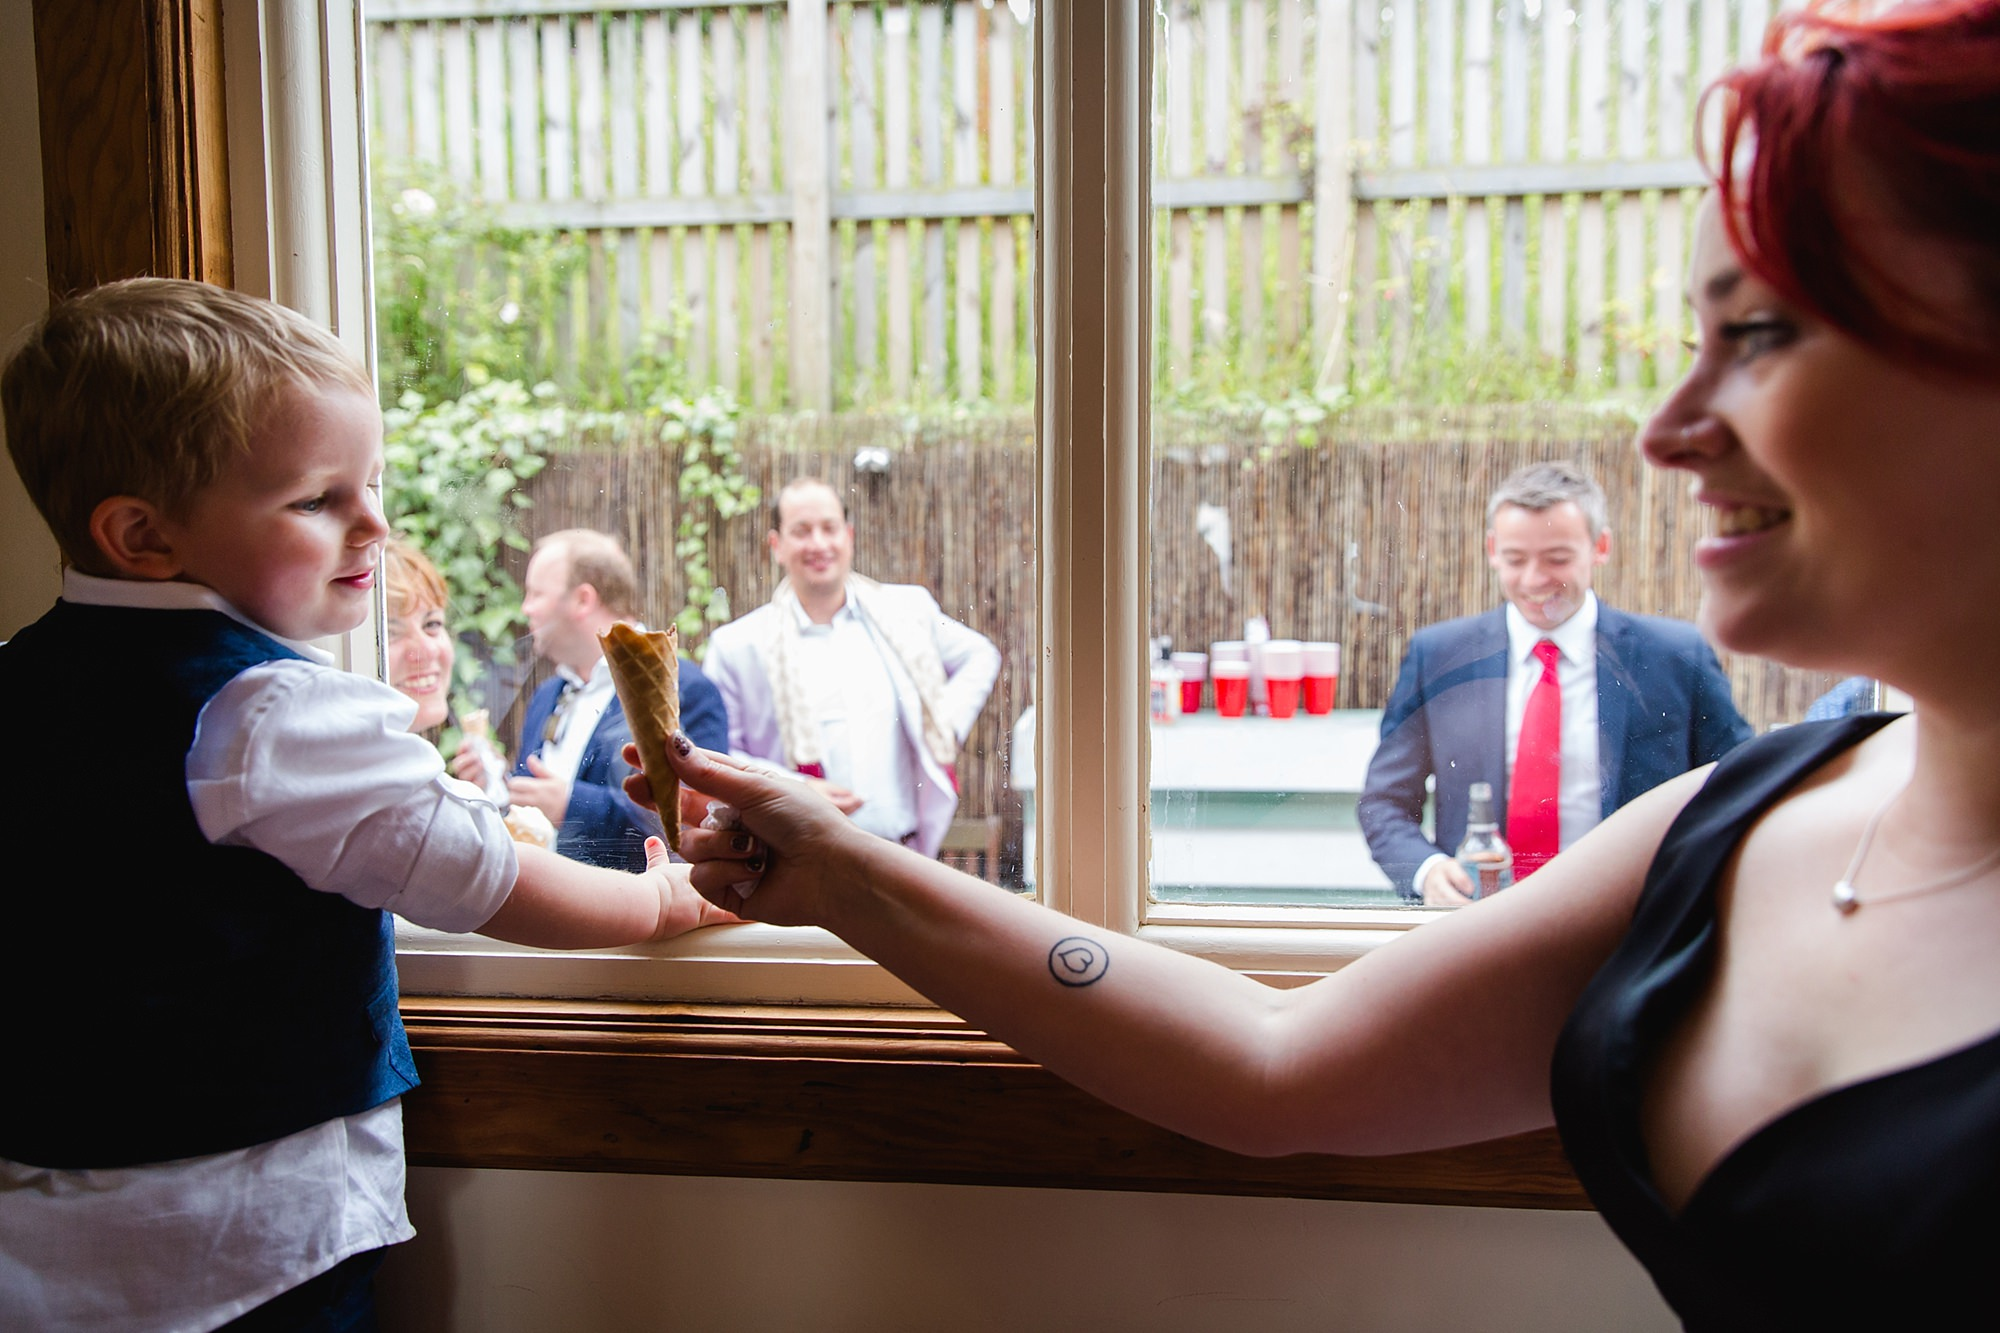 Beacon House wedding bride gives her ice cream cone to a guest